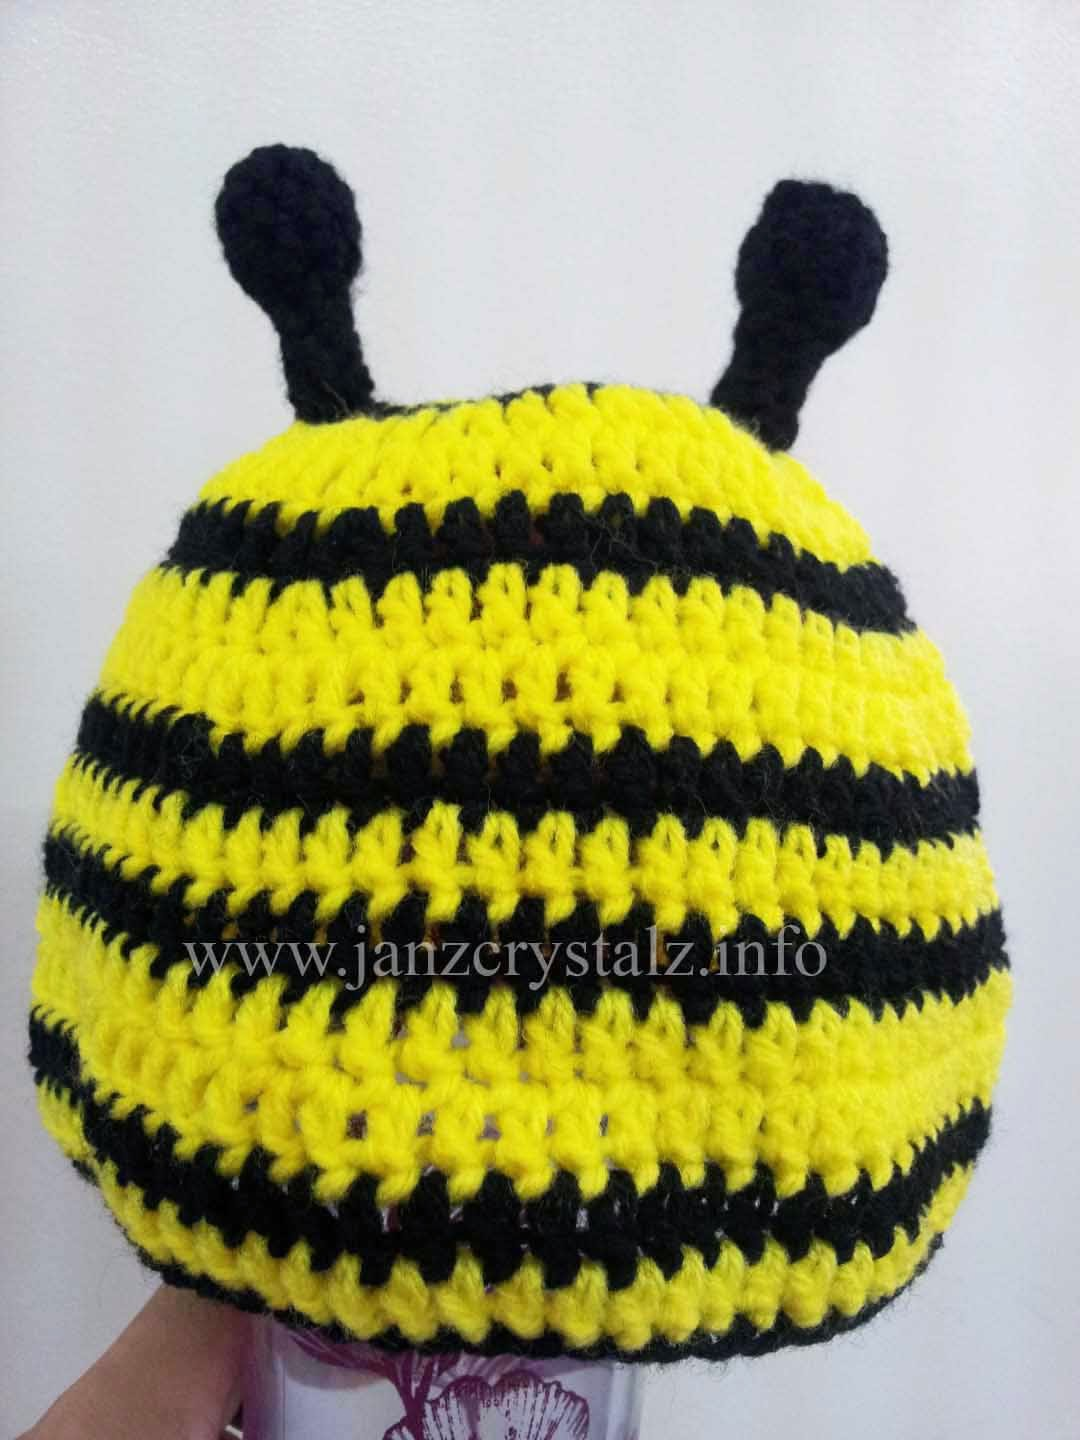 Summary Crochet Bumble Bee Hat And Tushie Cover Pattern Repeat